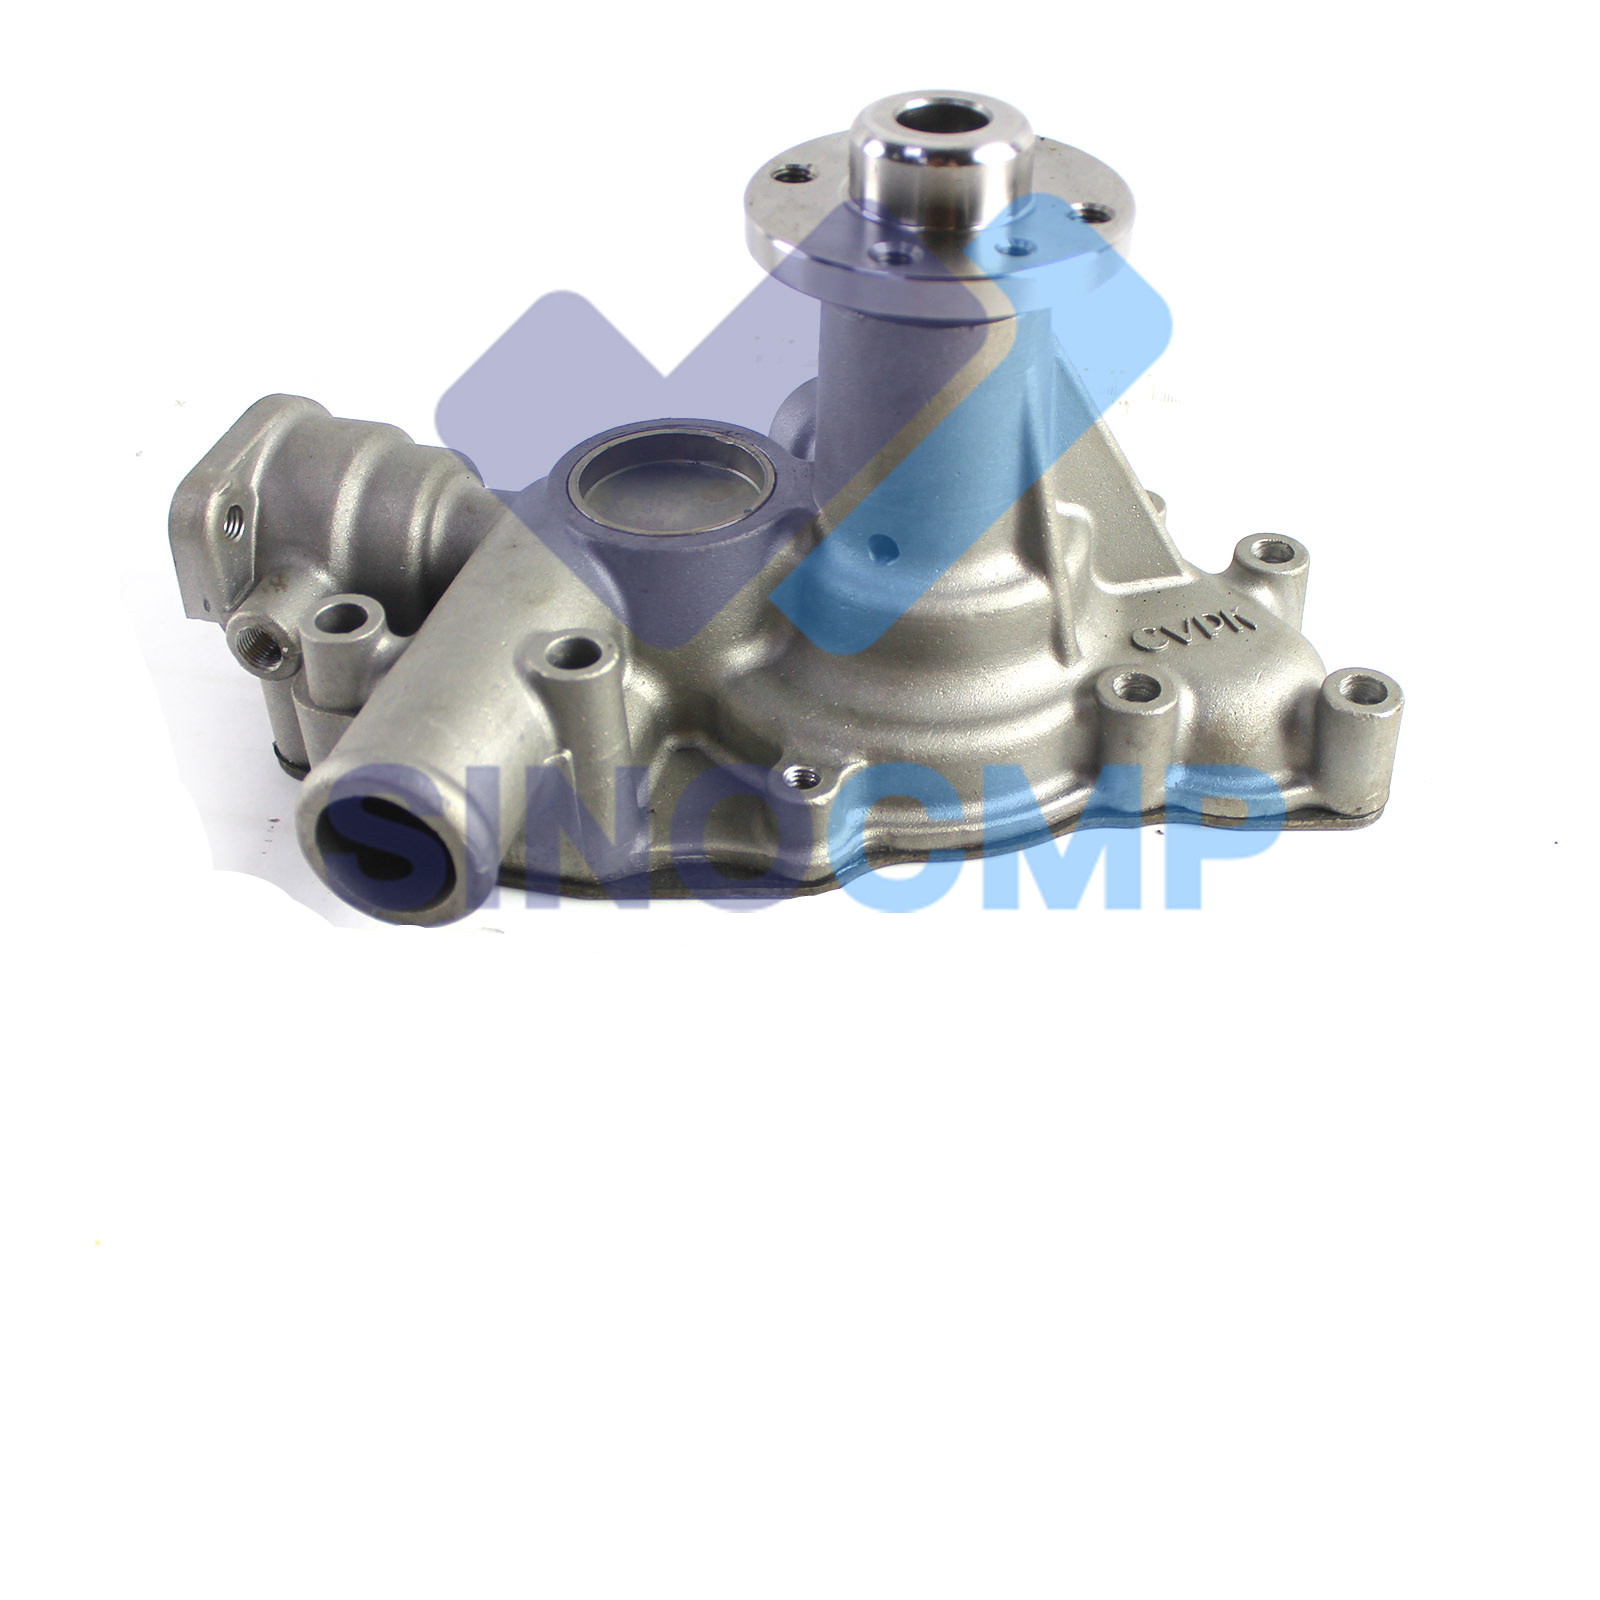 S4L Engine Water Pump fit for Forklift and Generator setS4L Engine Water Pump fit for Forklift and Generator set